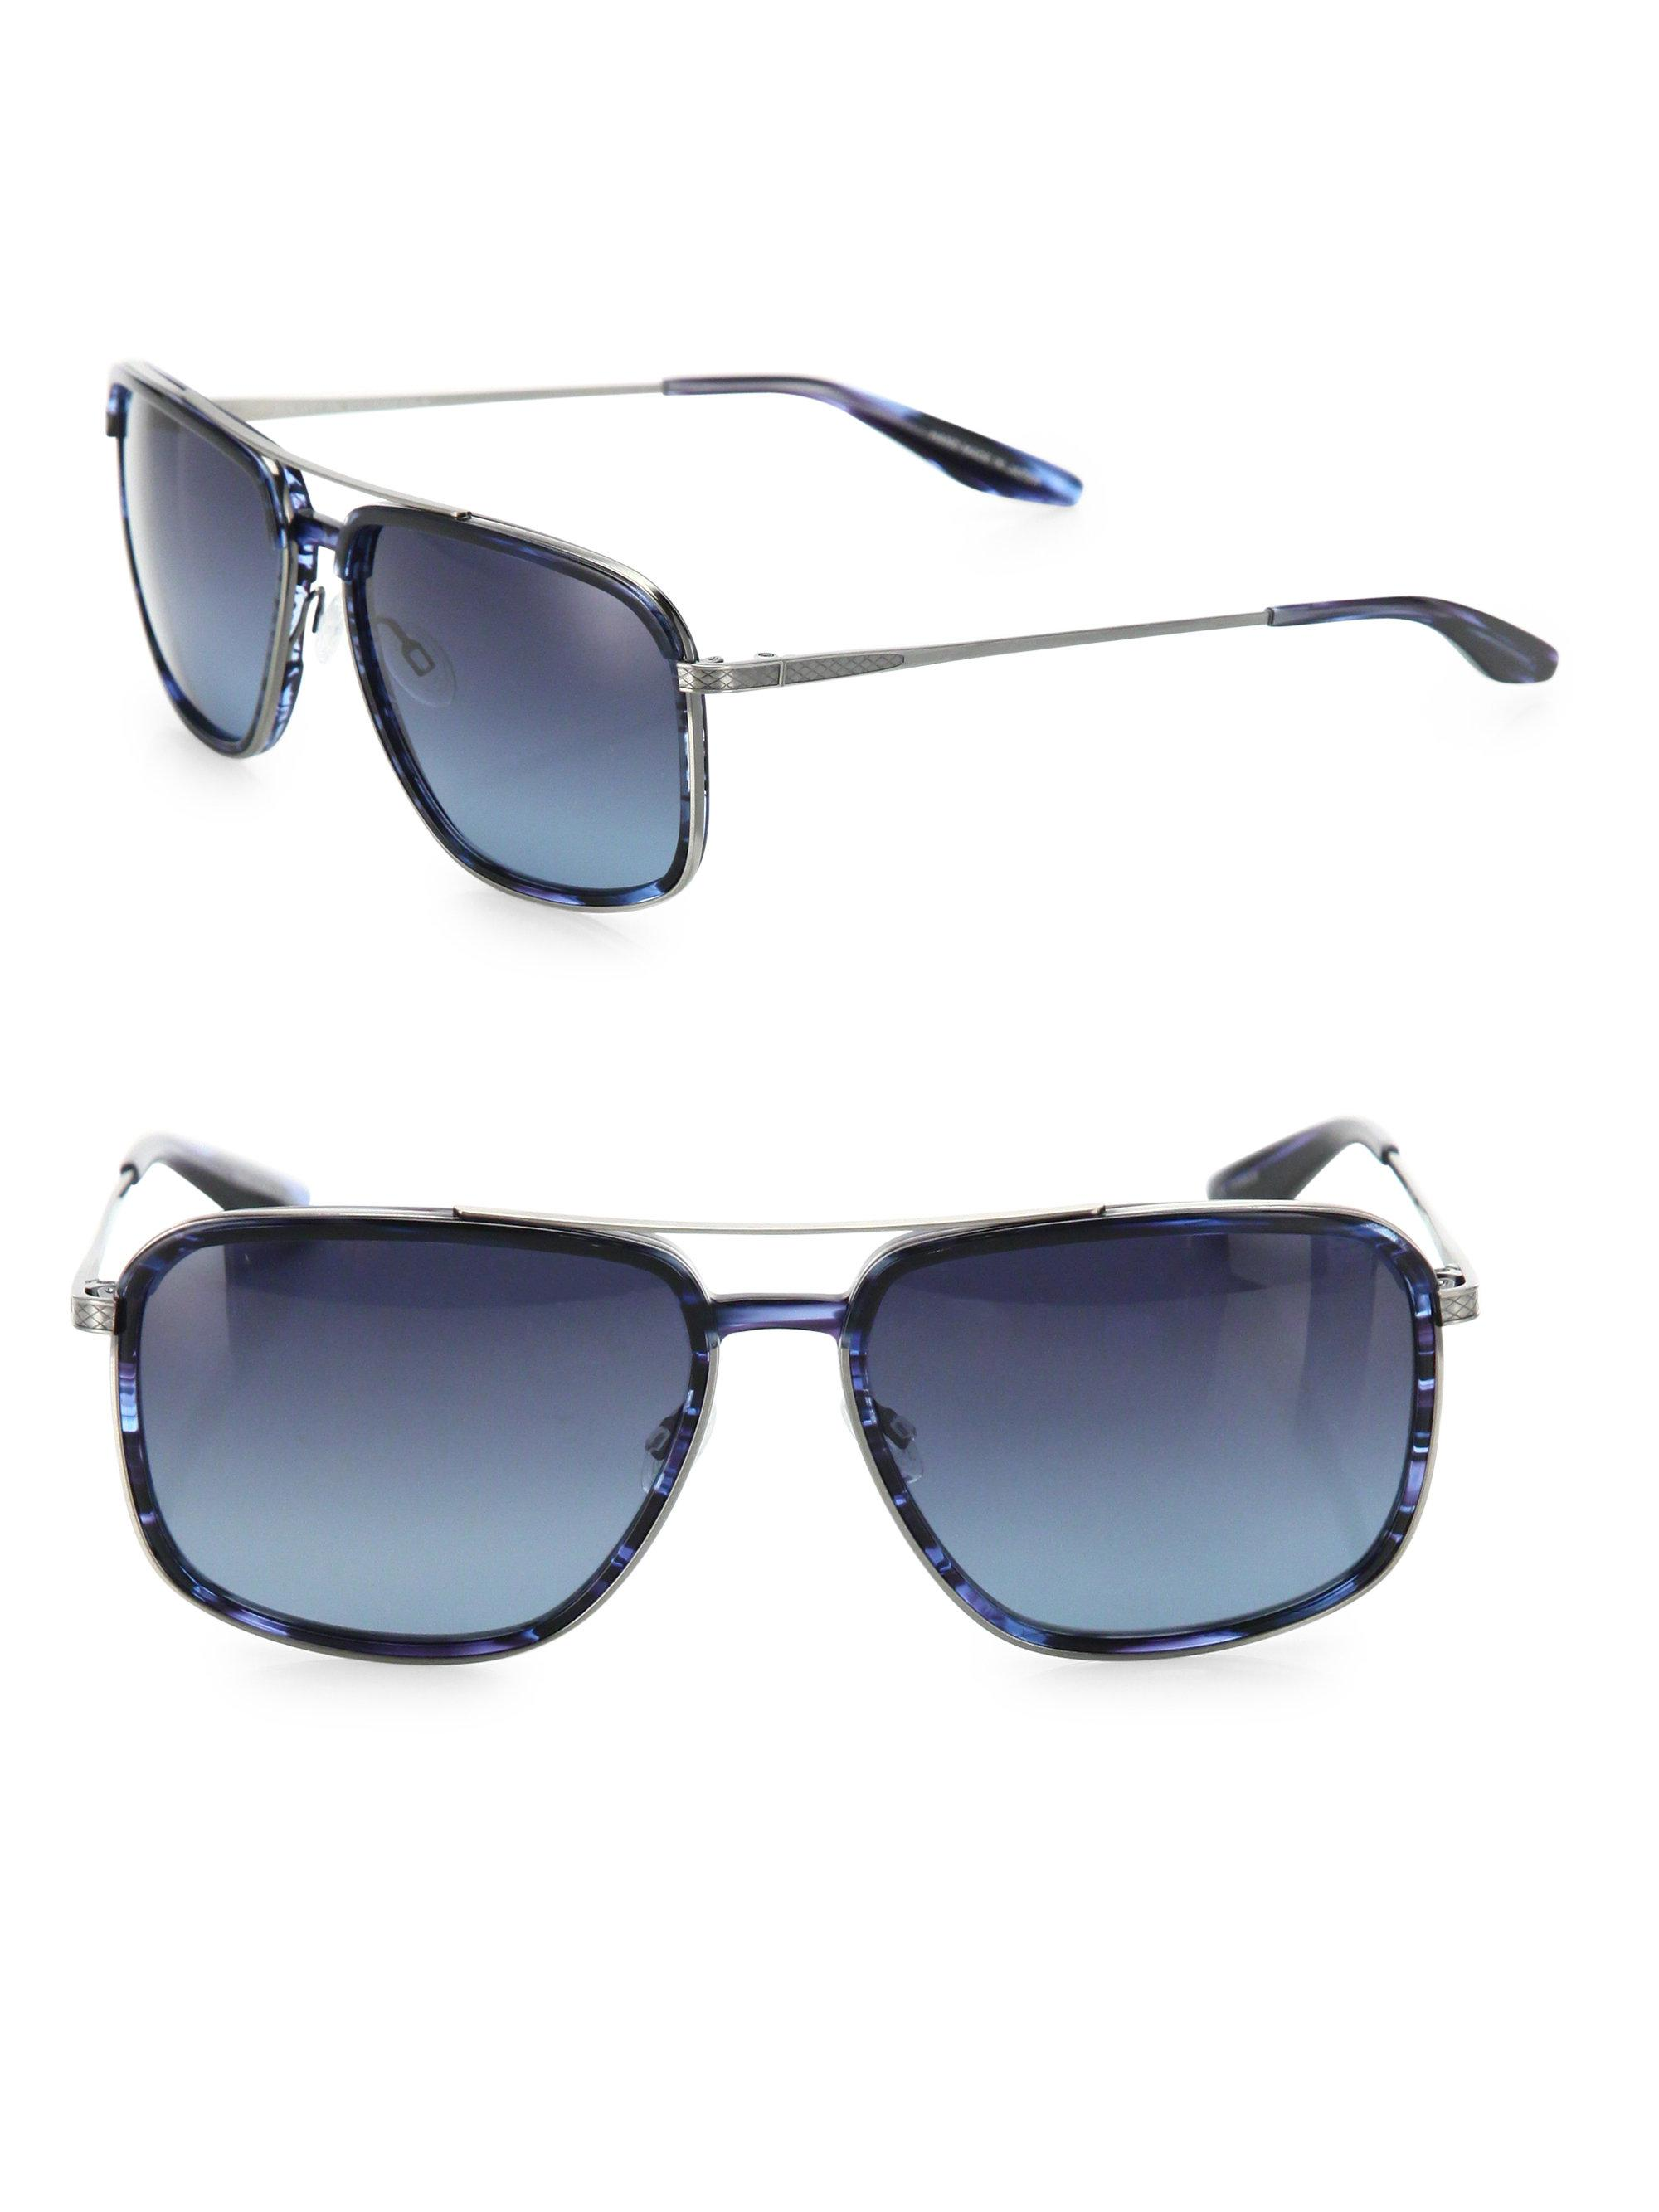 15c9424f87 Barton Perreira Magnate Midnight 60mm Navigator Sunglasses in Blue ...